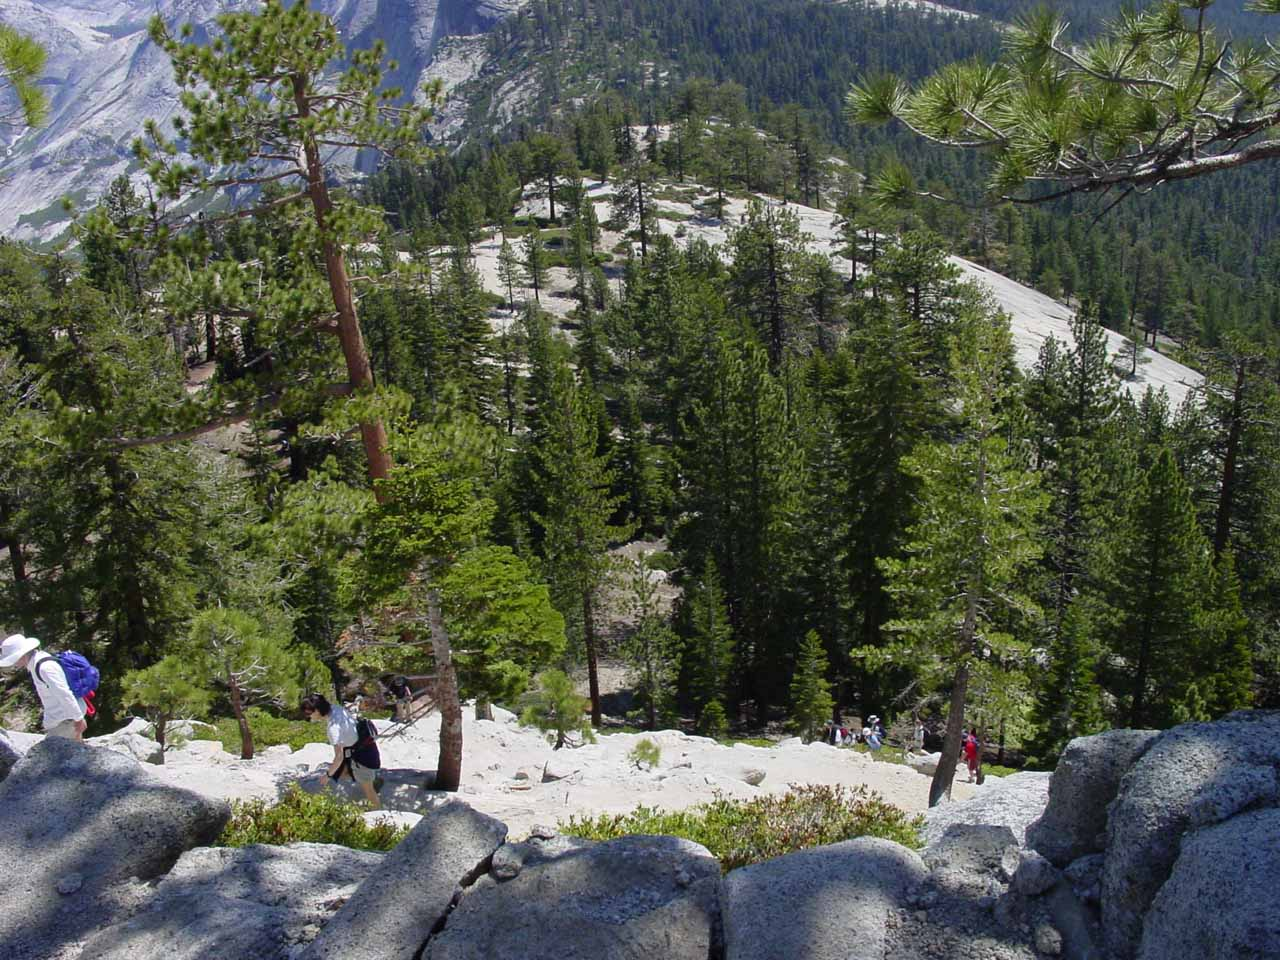 Looking down at the granite step switchbacks as we made the arduous ascent towards the Half Dome Saddle